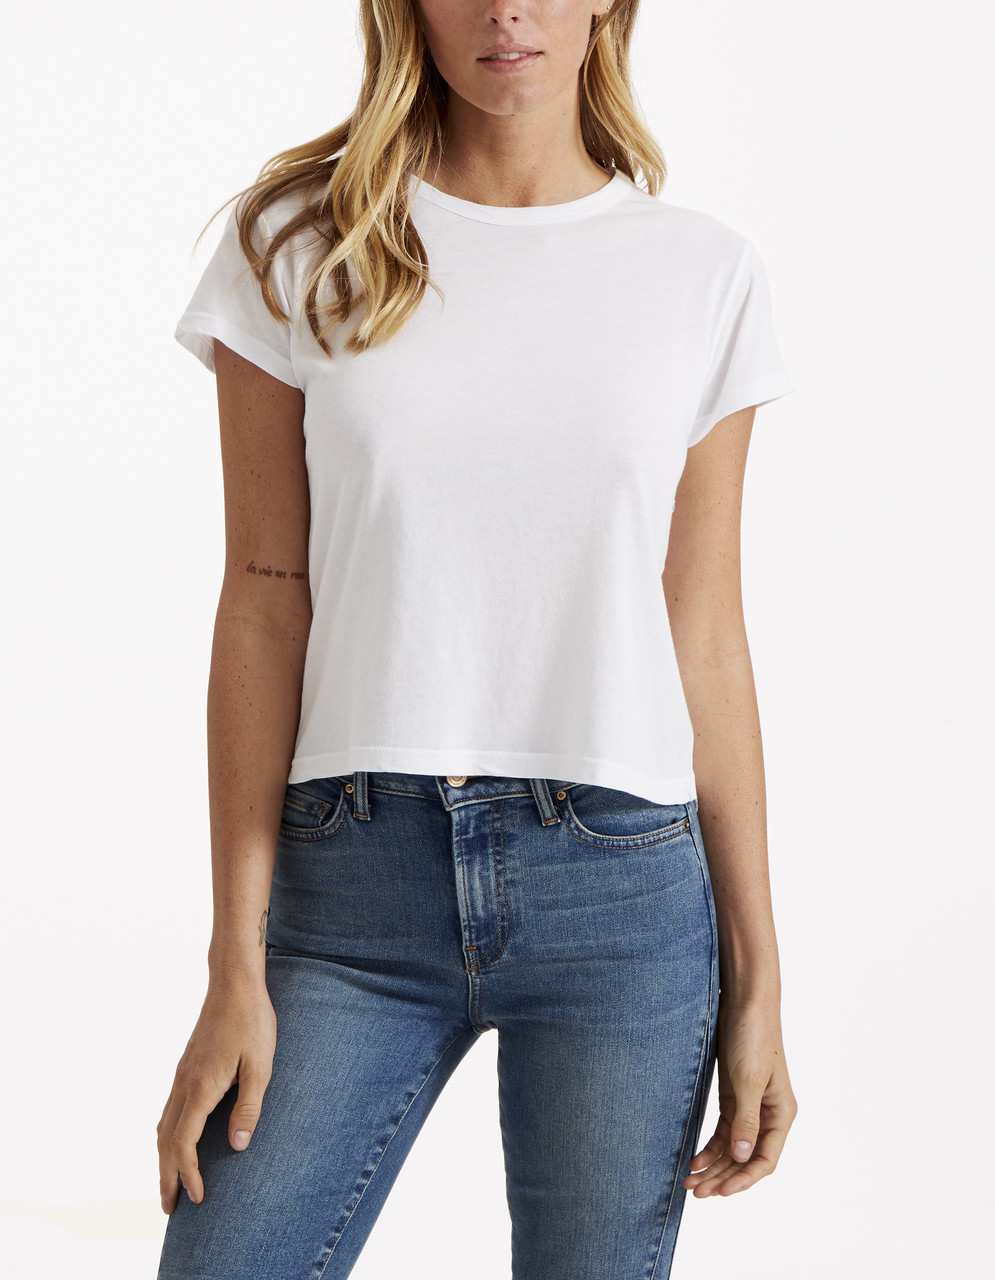 SHORT SLEEVE CROP TEE - Cassidy in Assorted Colors